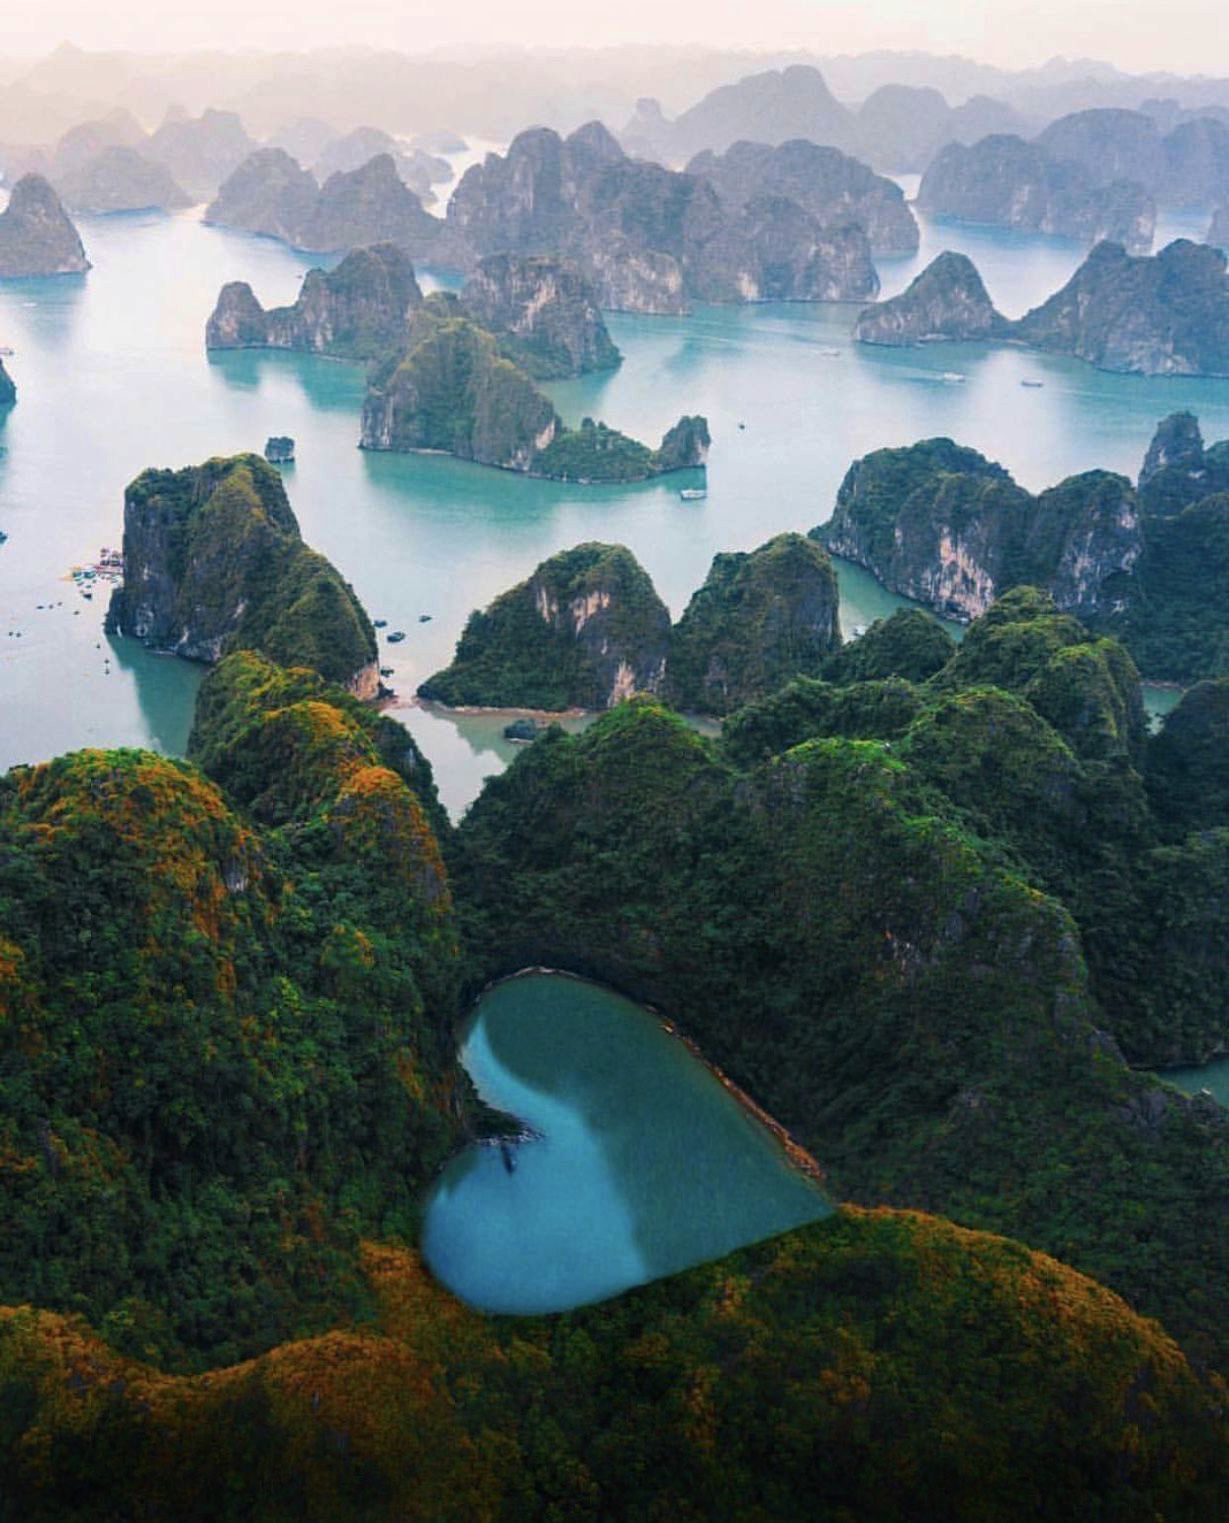 Kmart Photography Near Me Case Photography Groups Near Me Travel Photography Halong Bay Vietnam Vacation Trips